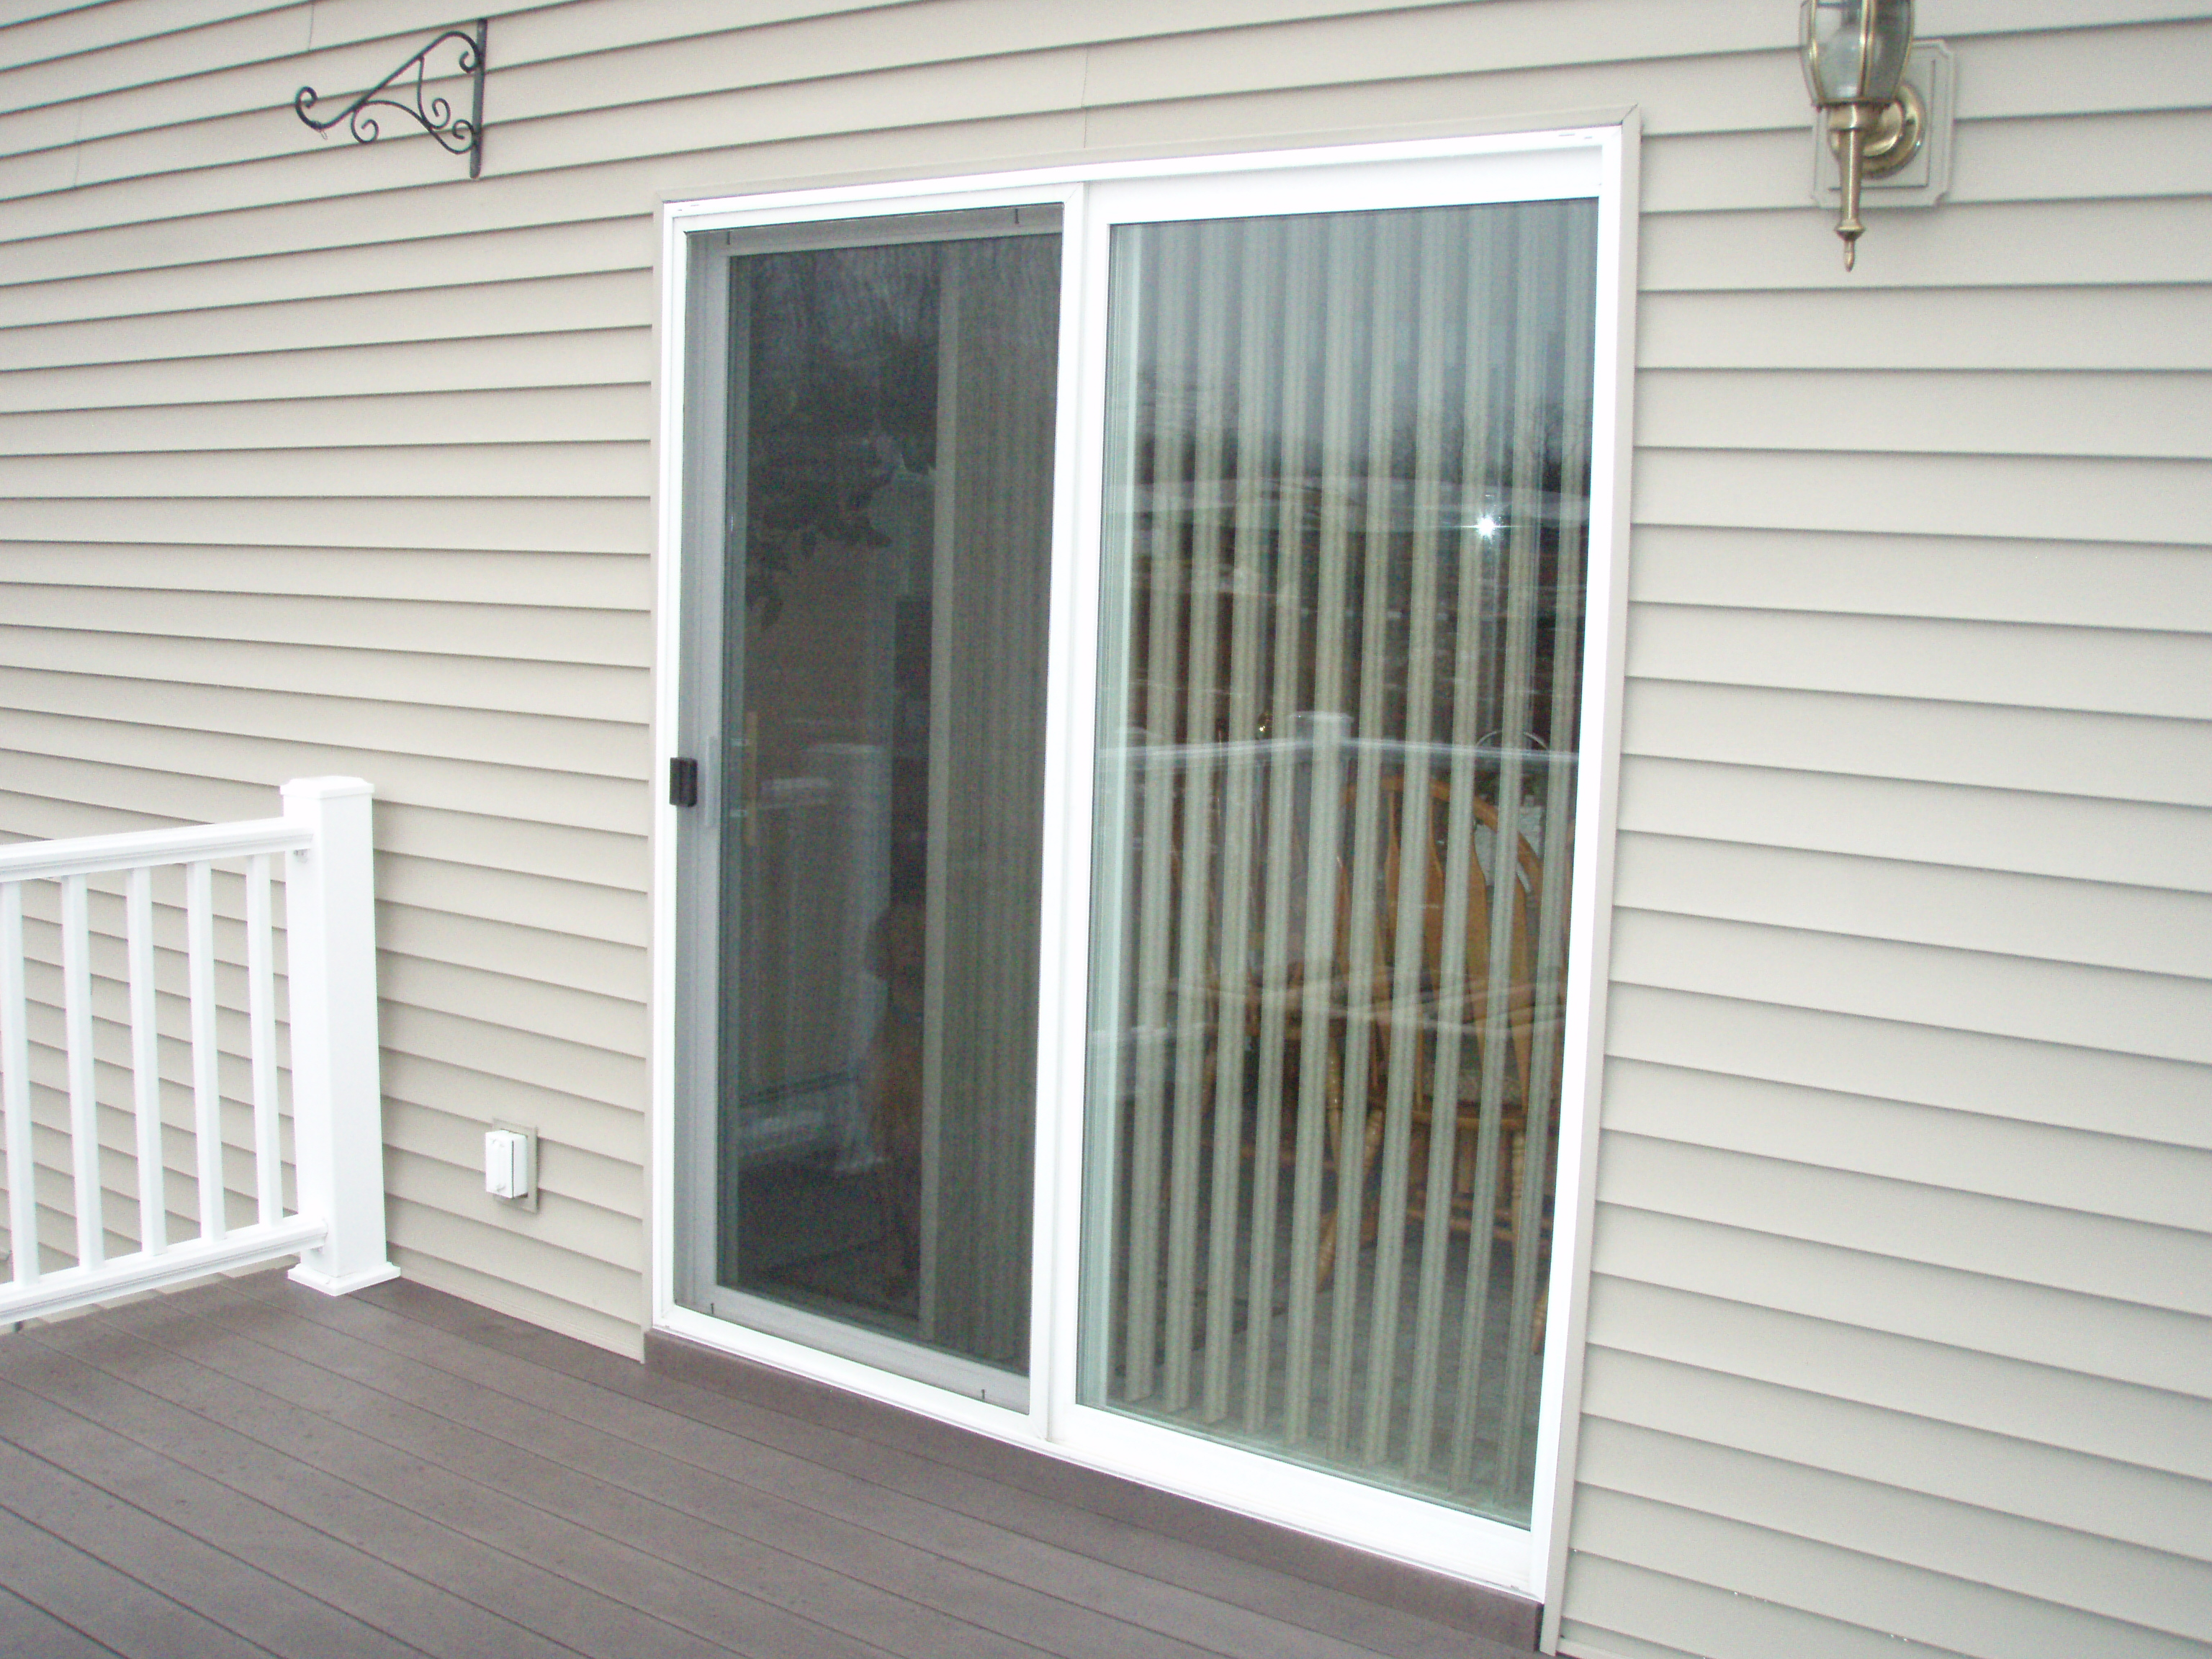 Upvc Patio doors.JPG